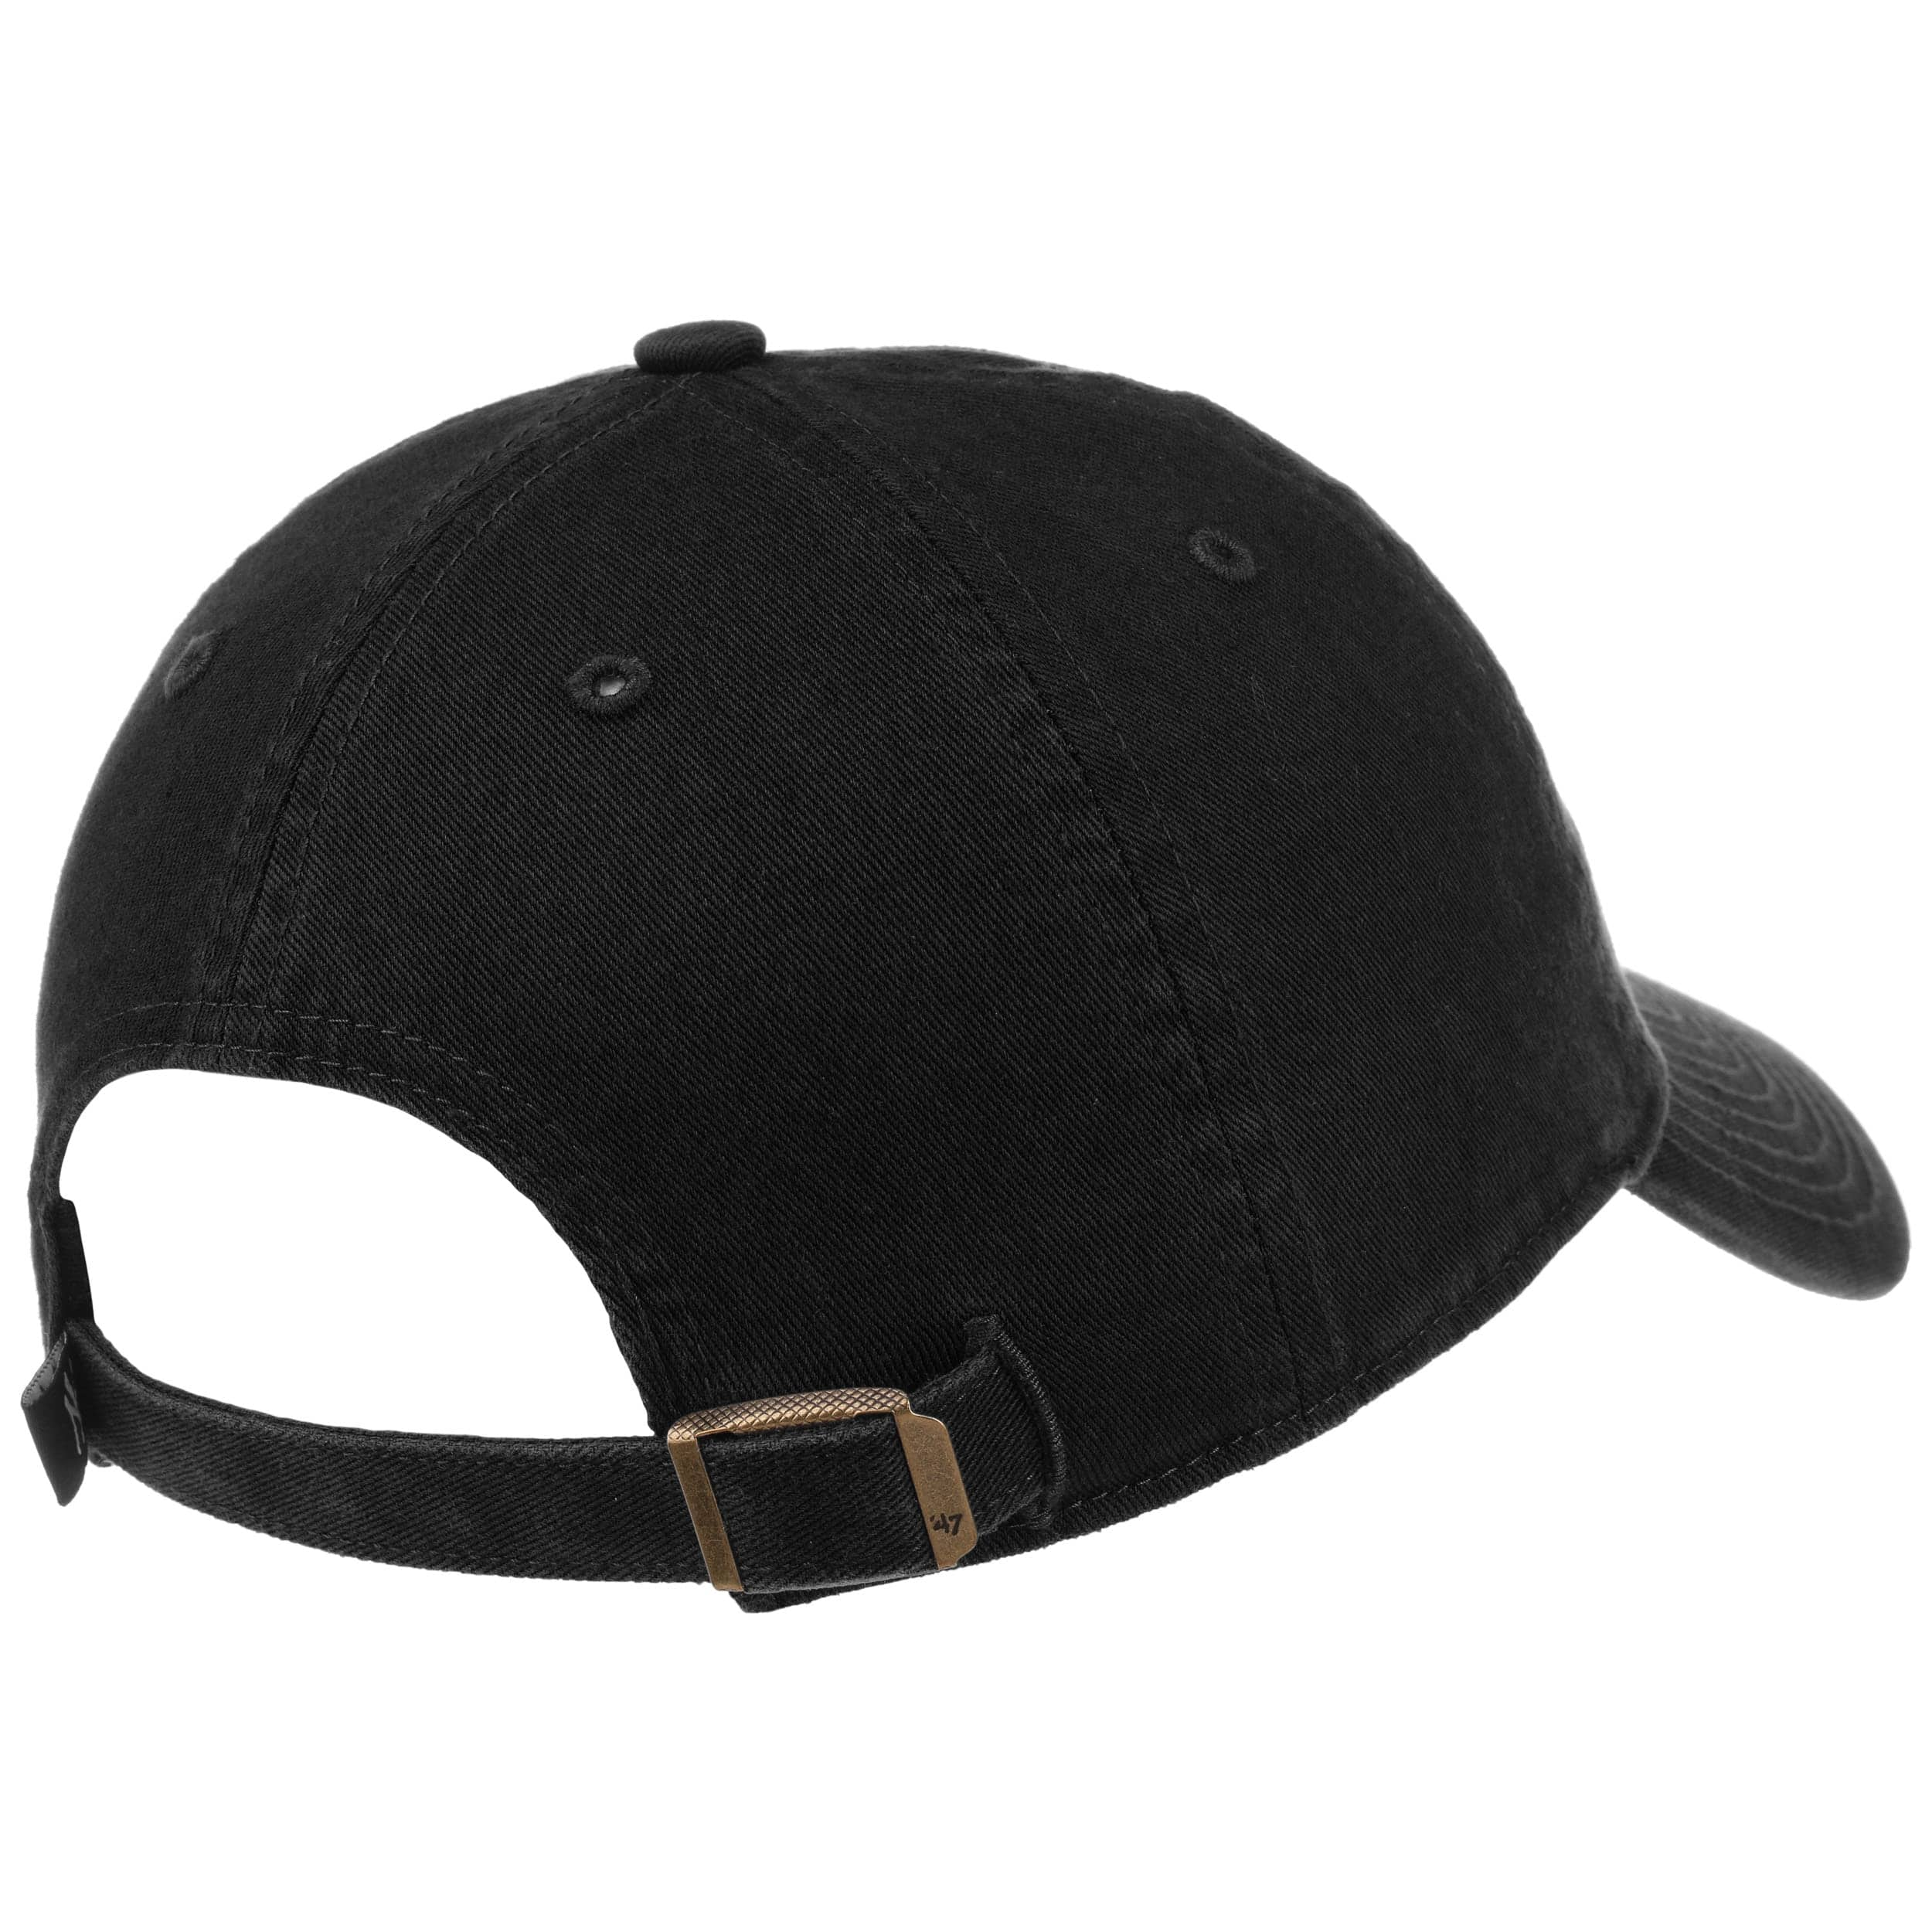 ... Clean Up Youth Yankees Cap by 47 Brand - black 3 ... 3acc044c8f3